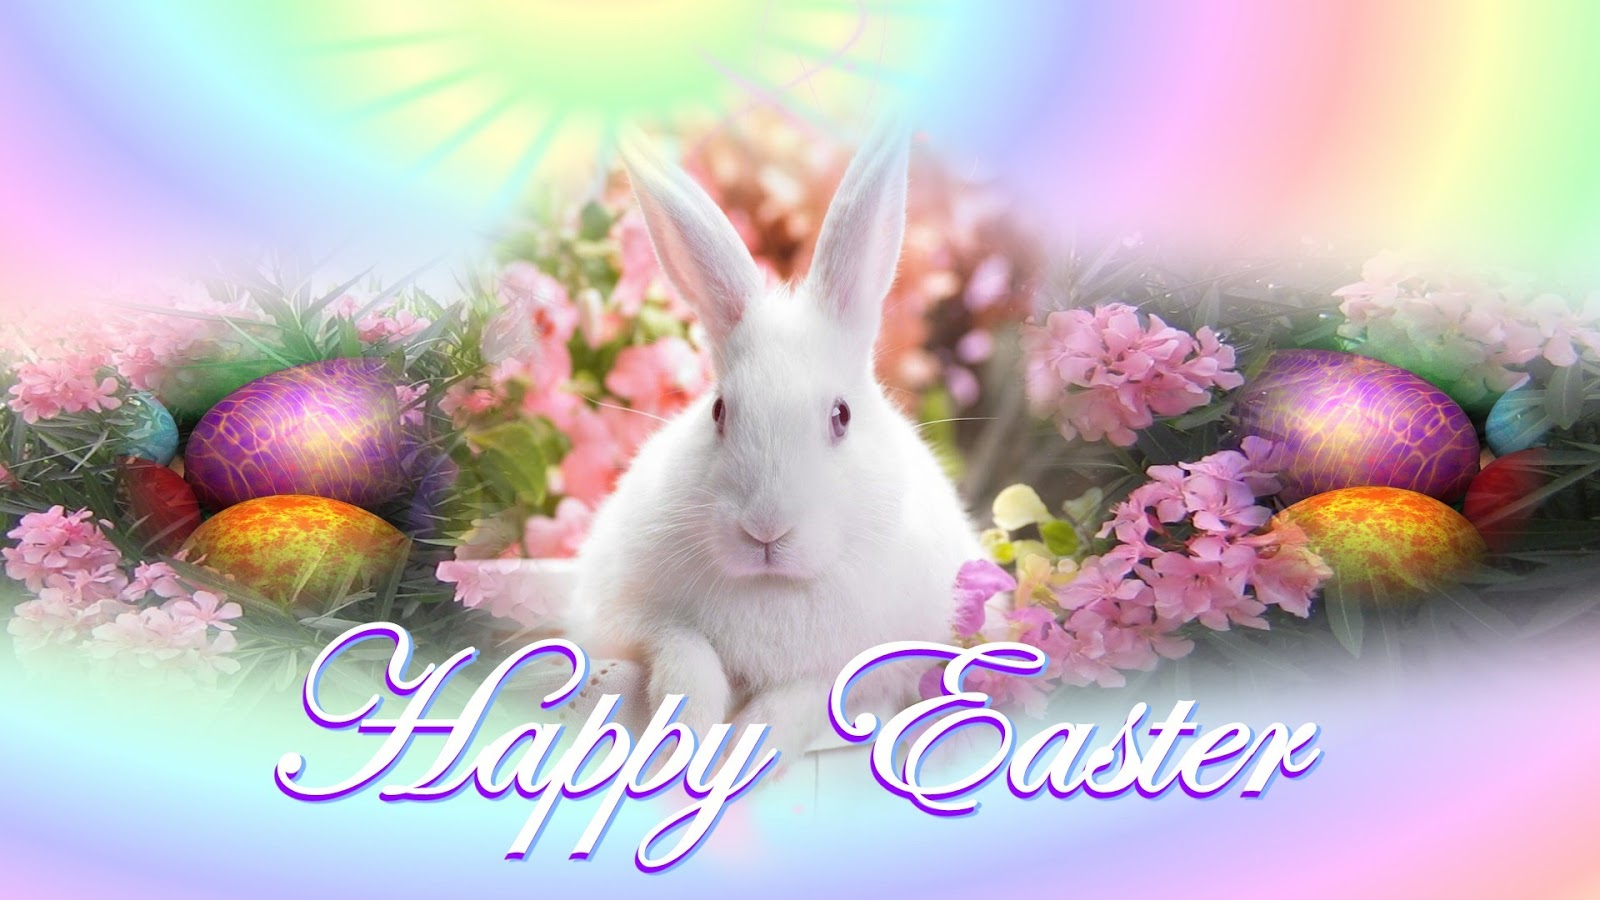 Happy Easter Day   April 12 2020 Download 2020 Wishes Images 1600x900